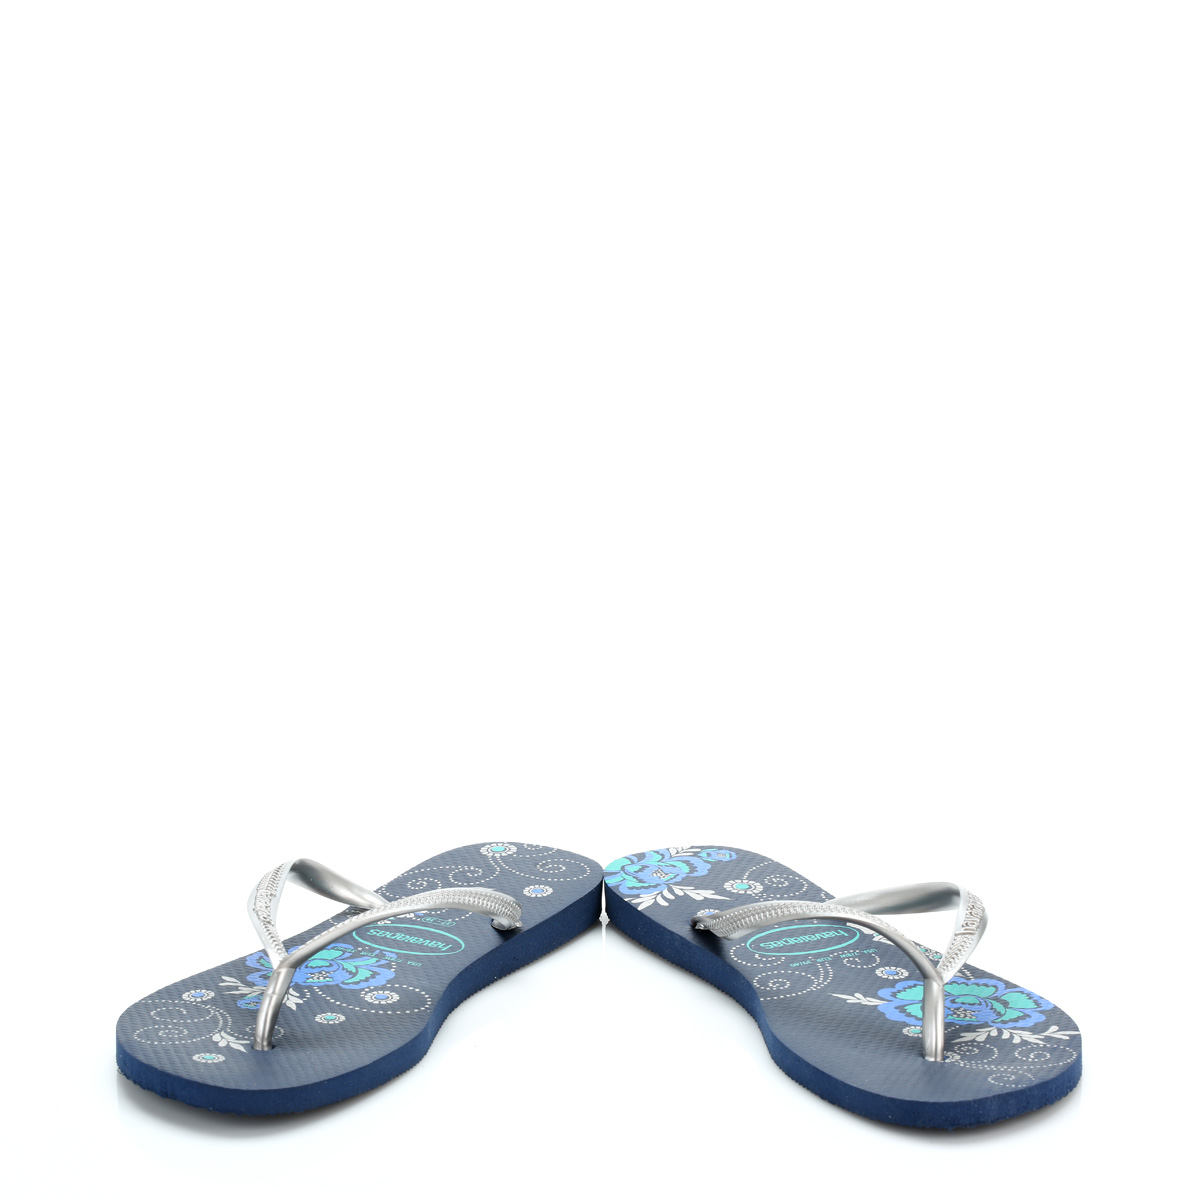 Luxury  Earth Spirit  View All Sandals  View All Earth Spirit Sandals